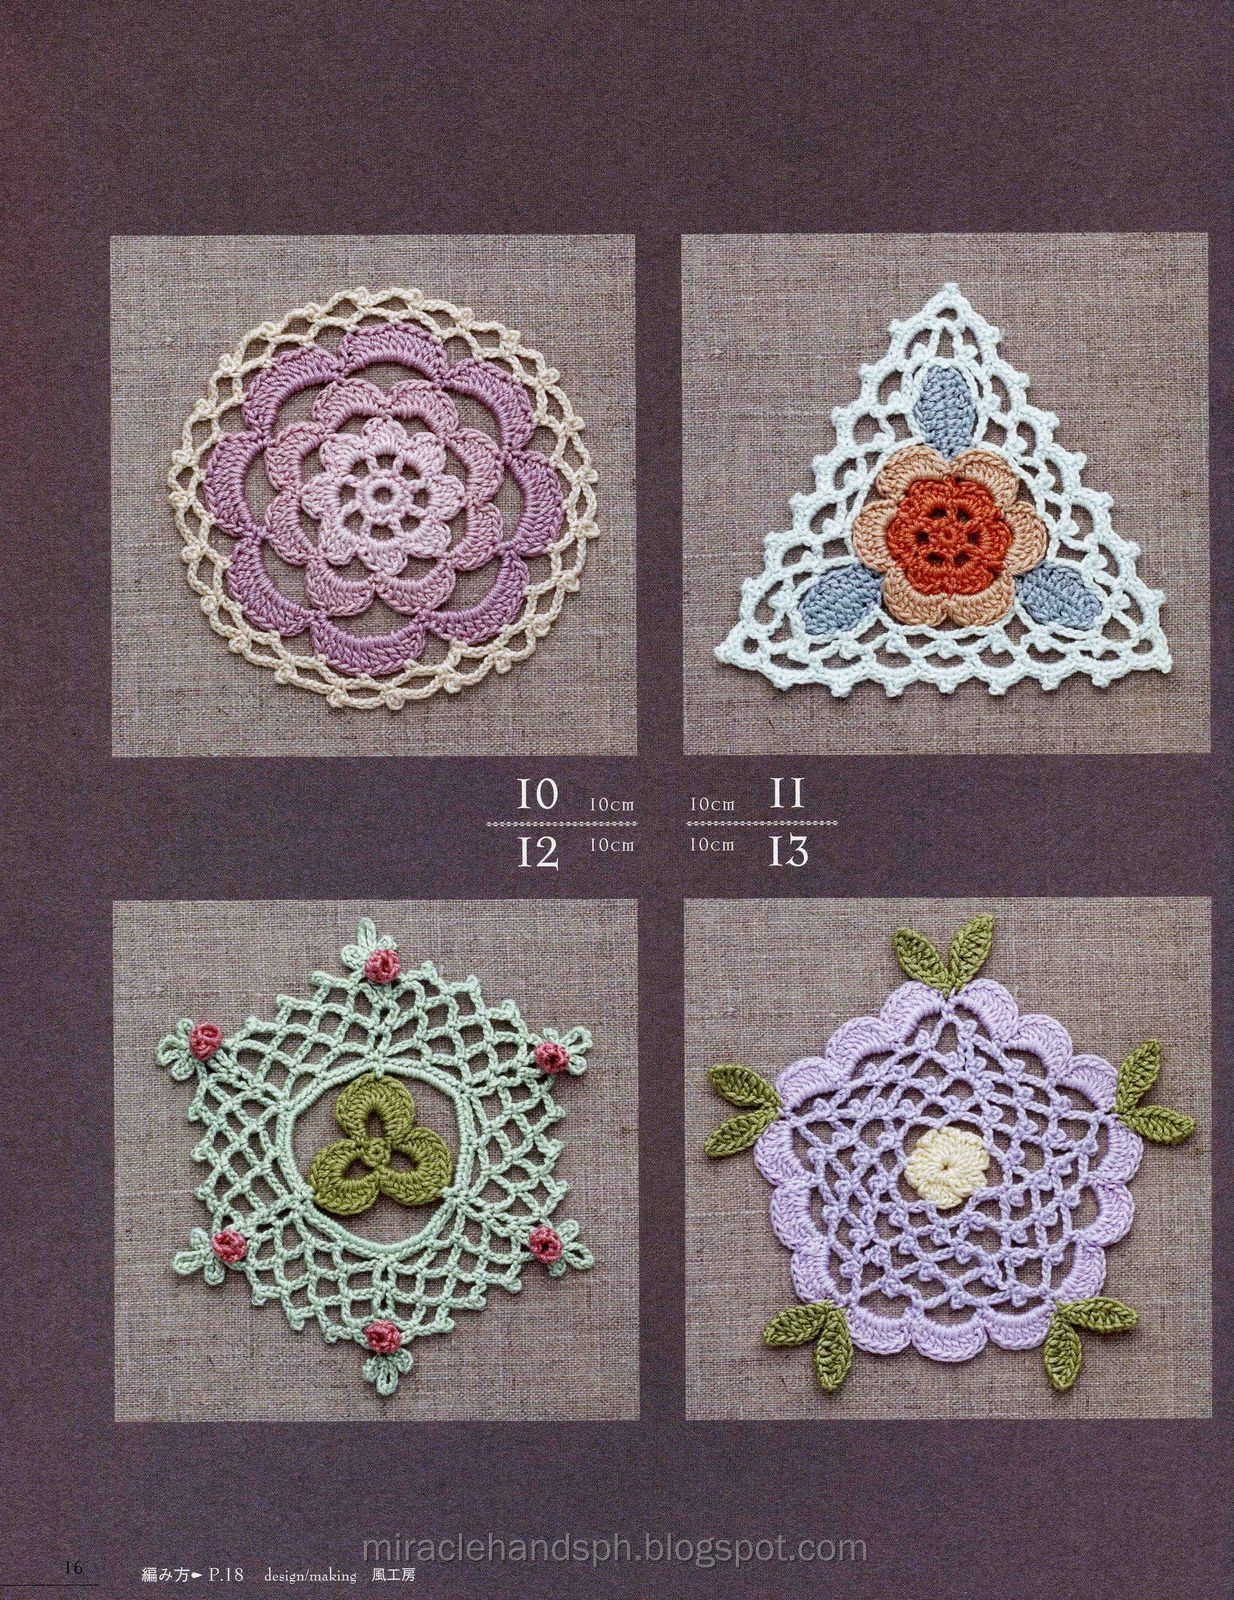 Crochet Pattern Books : Free japanese craft book: Crochet Rose Pattern 100 ~ Miracle hands